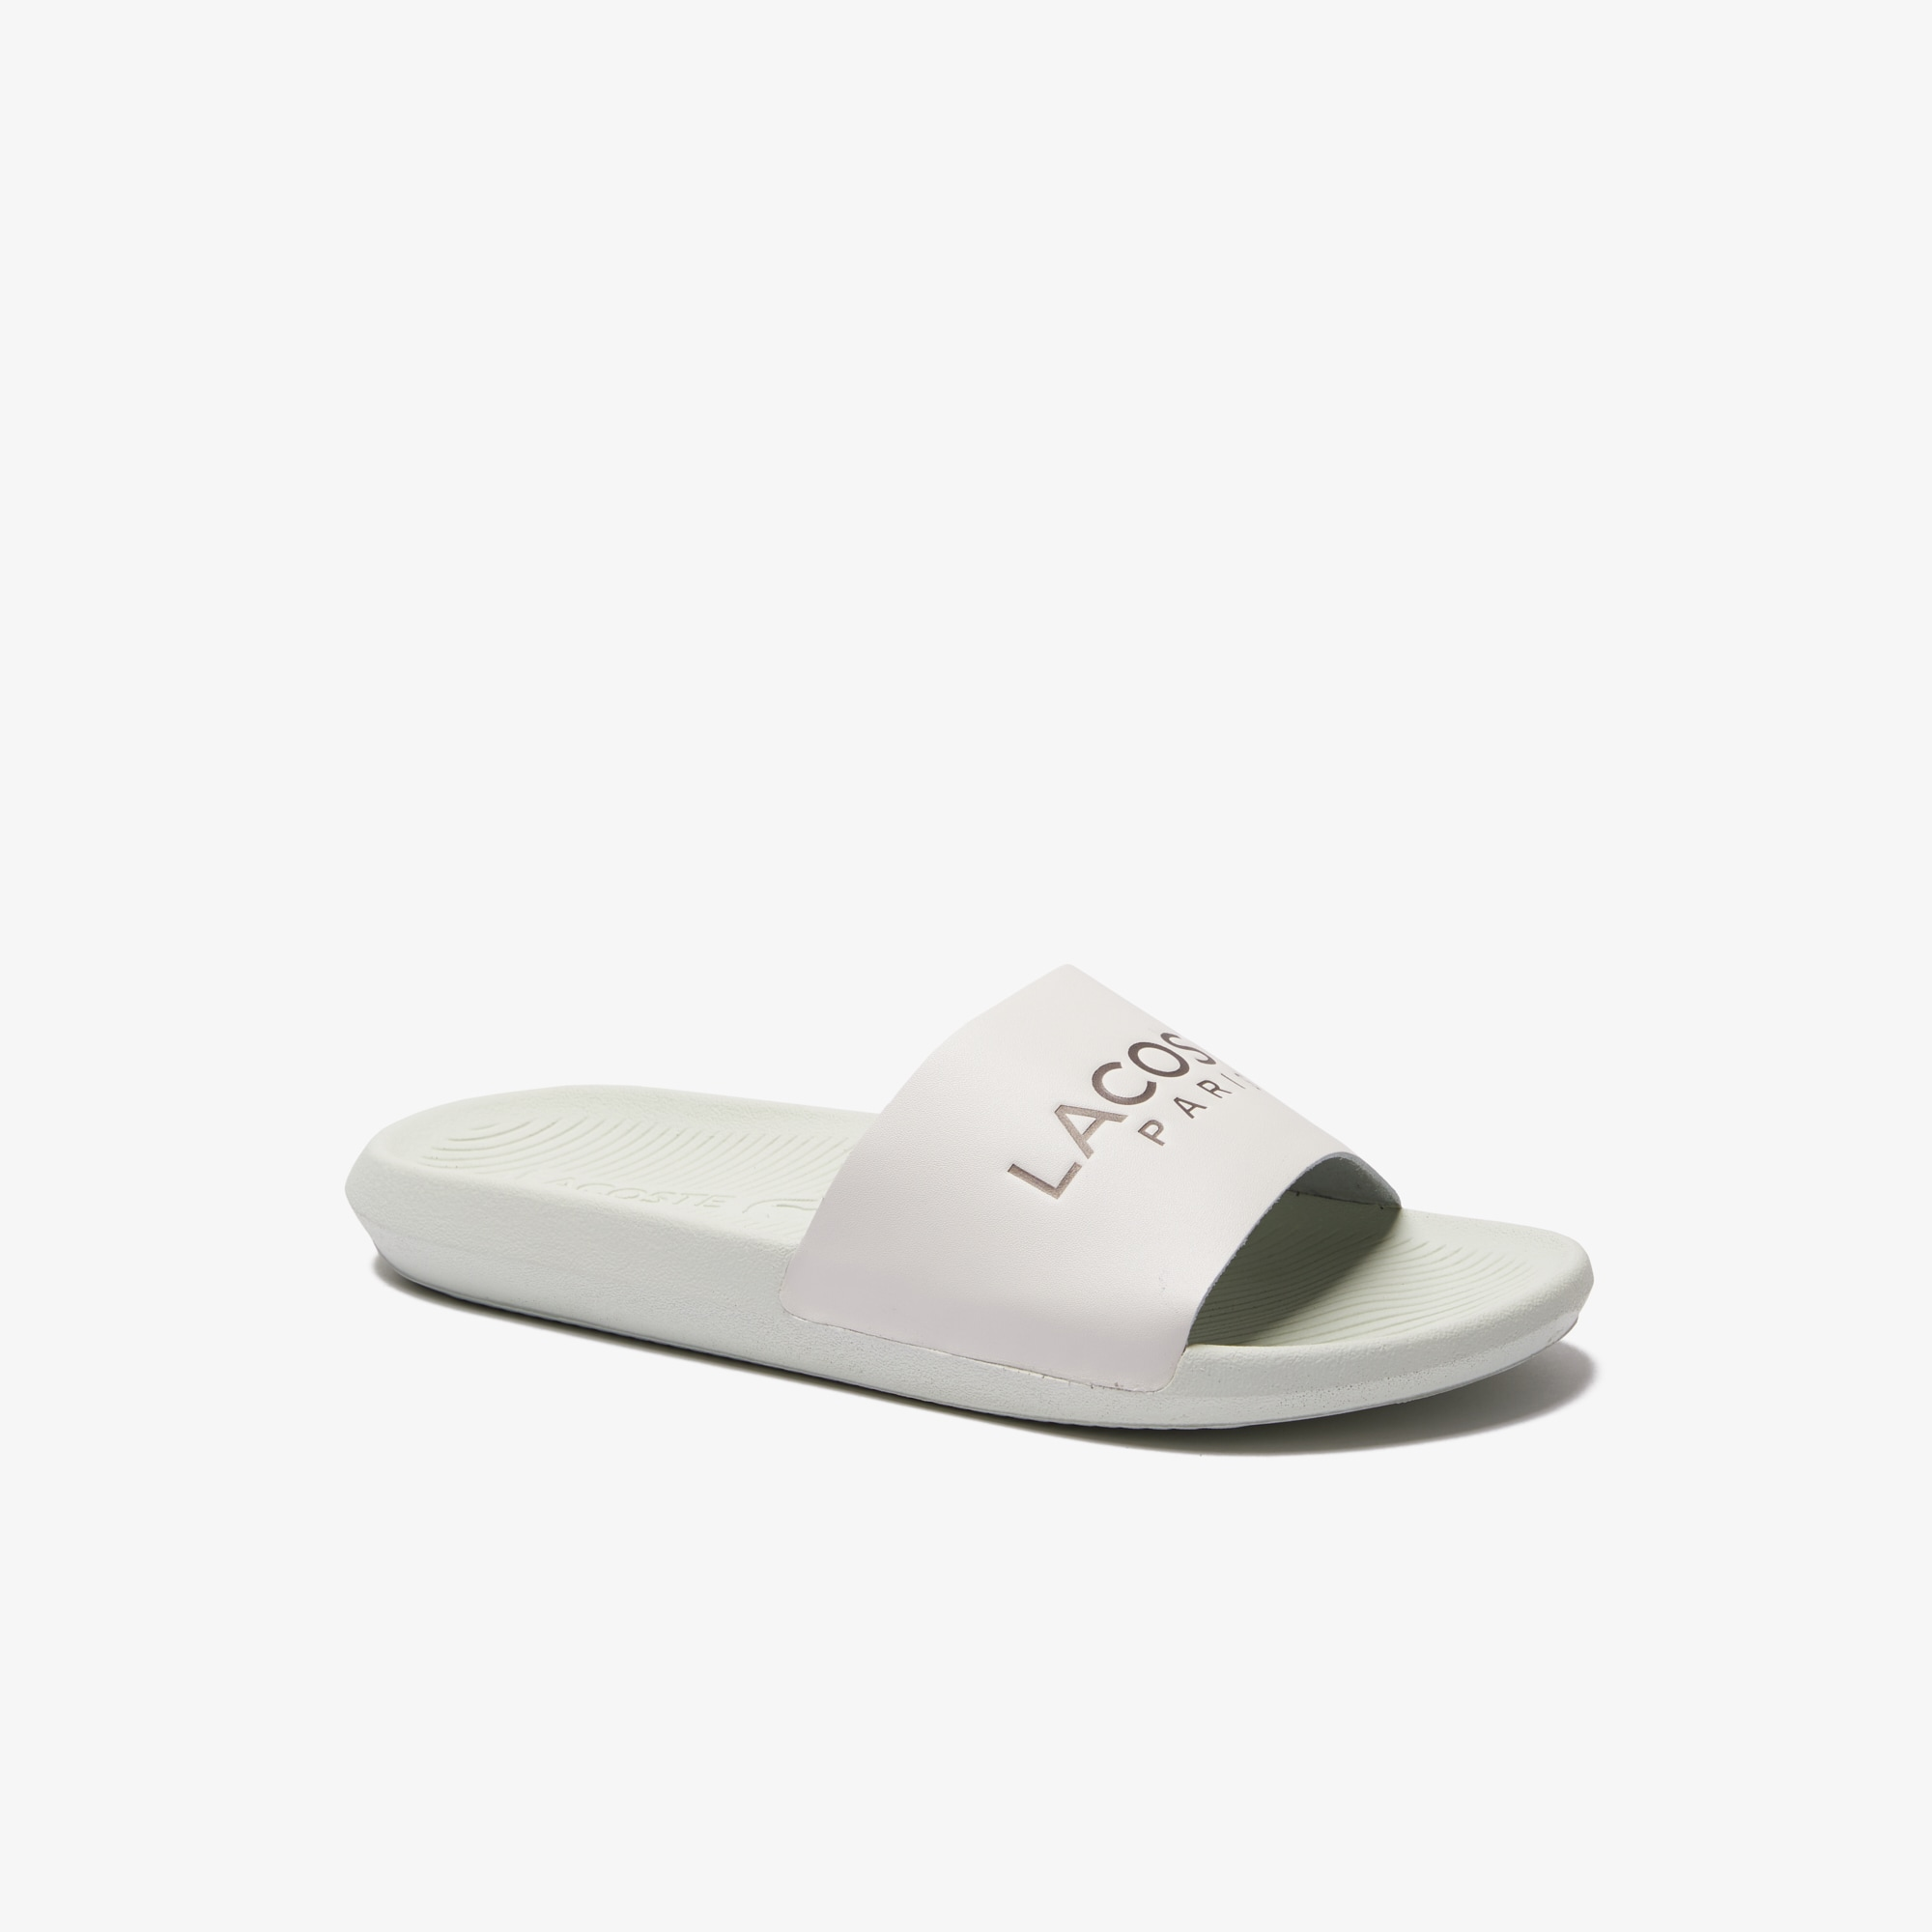 2c9e4df22 Men s Slides.  60.00. PLP Content Star Product SS19 Footwear Wildcard Men